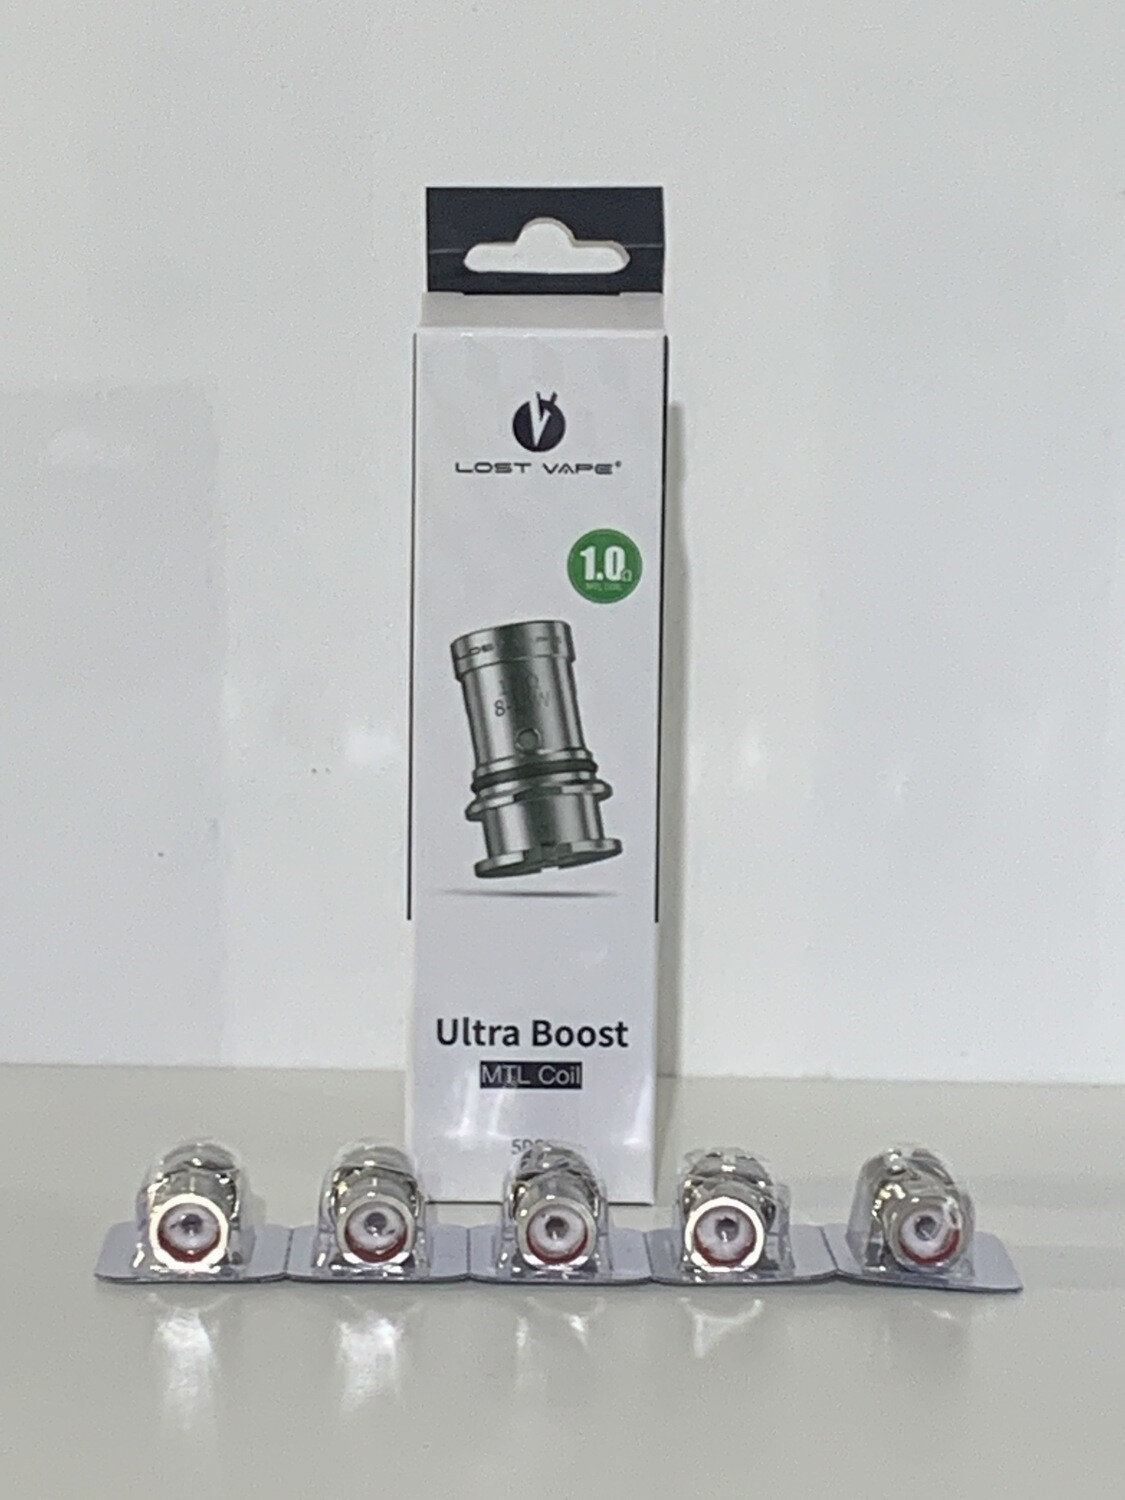 Lost Vape Ultra Boost Coils 1.0ohm